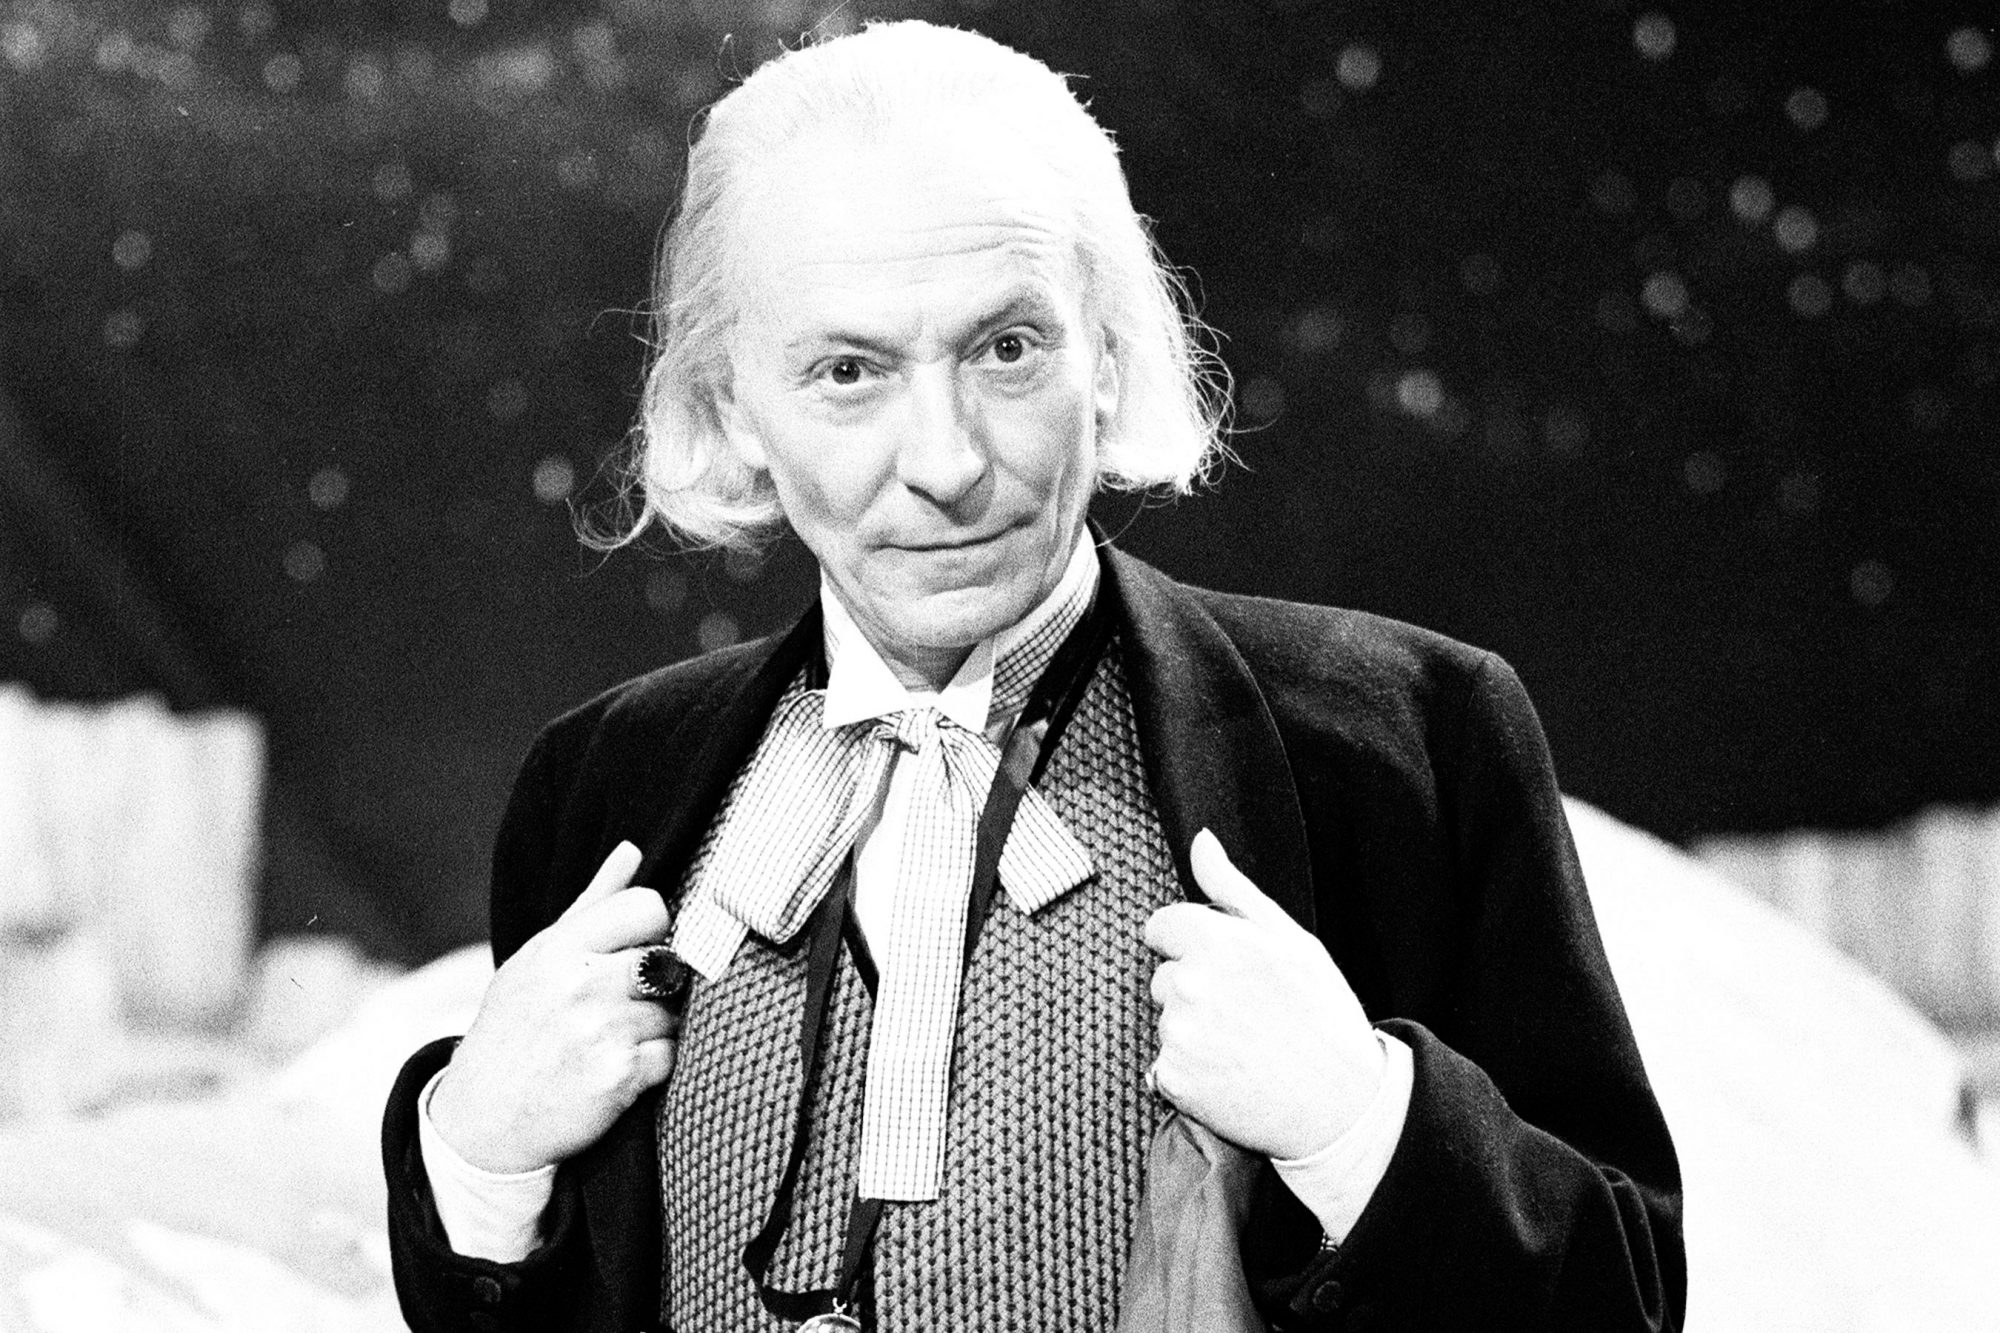 Actor William Hartnell - the first Doctor - pictured during rehearsals at Television Centre - Studio TC1 - 10th February